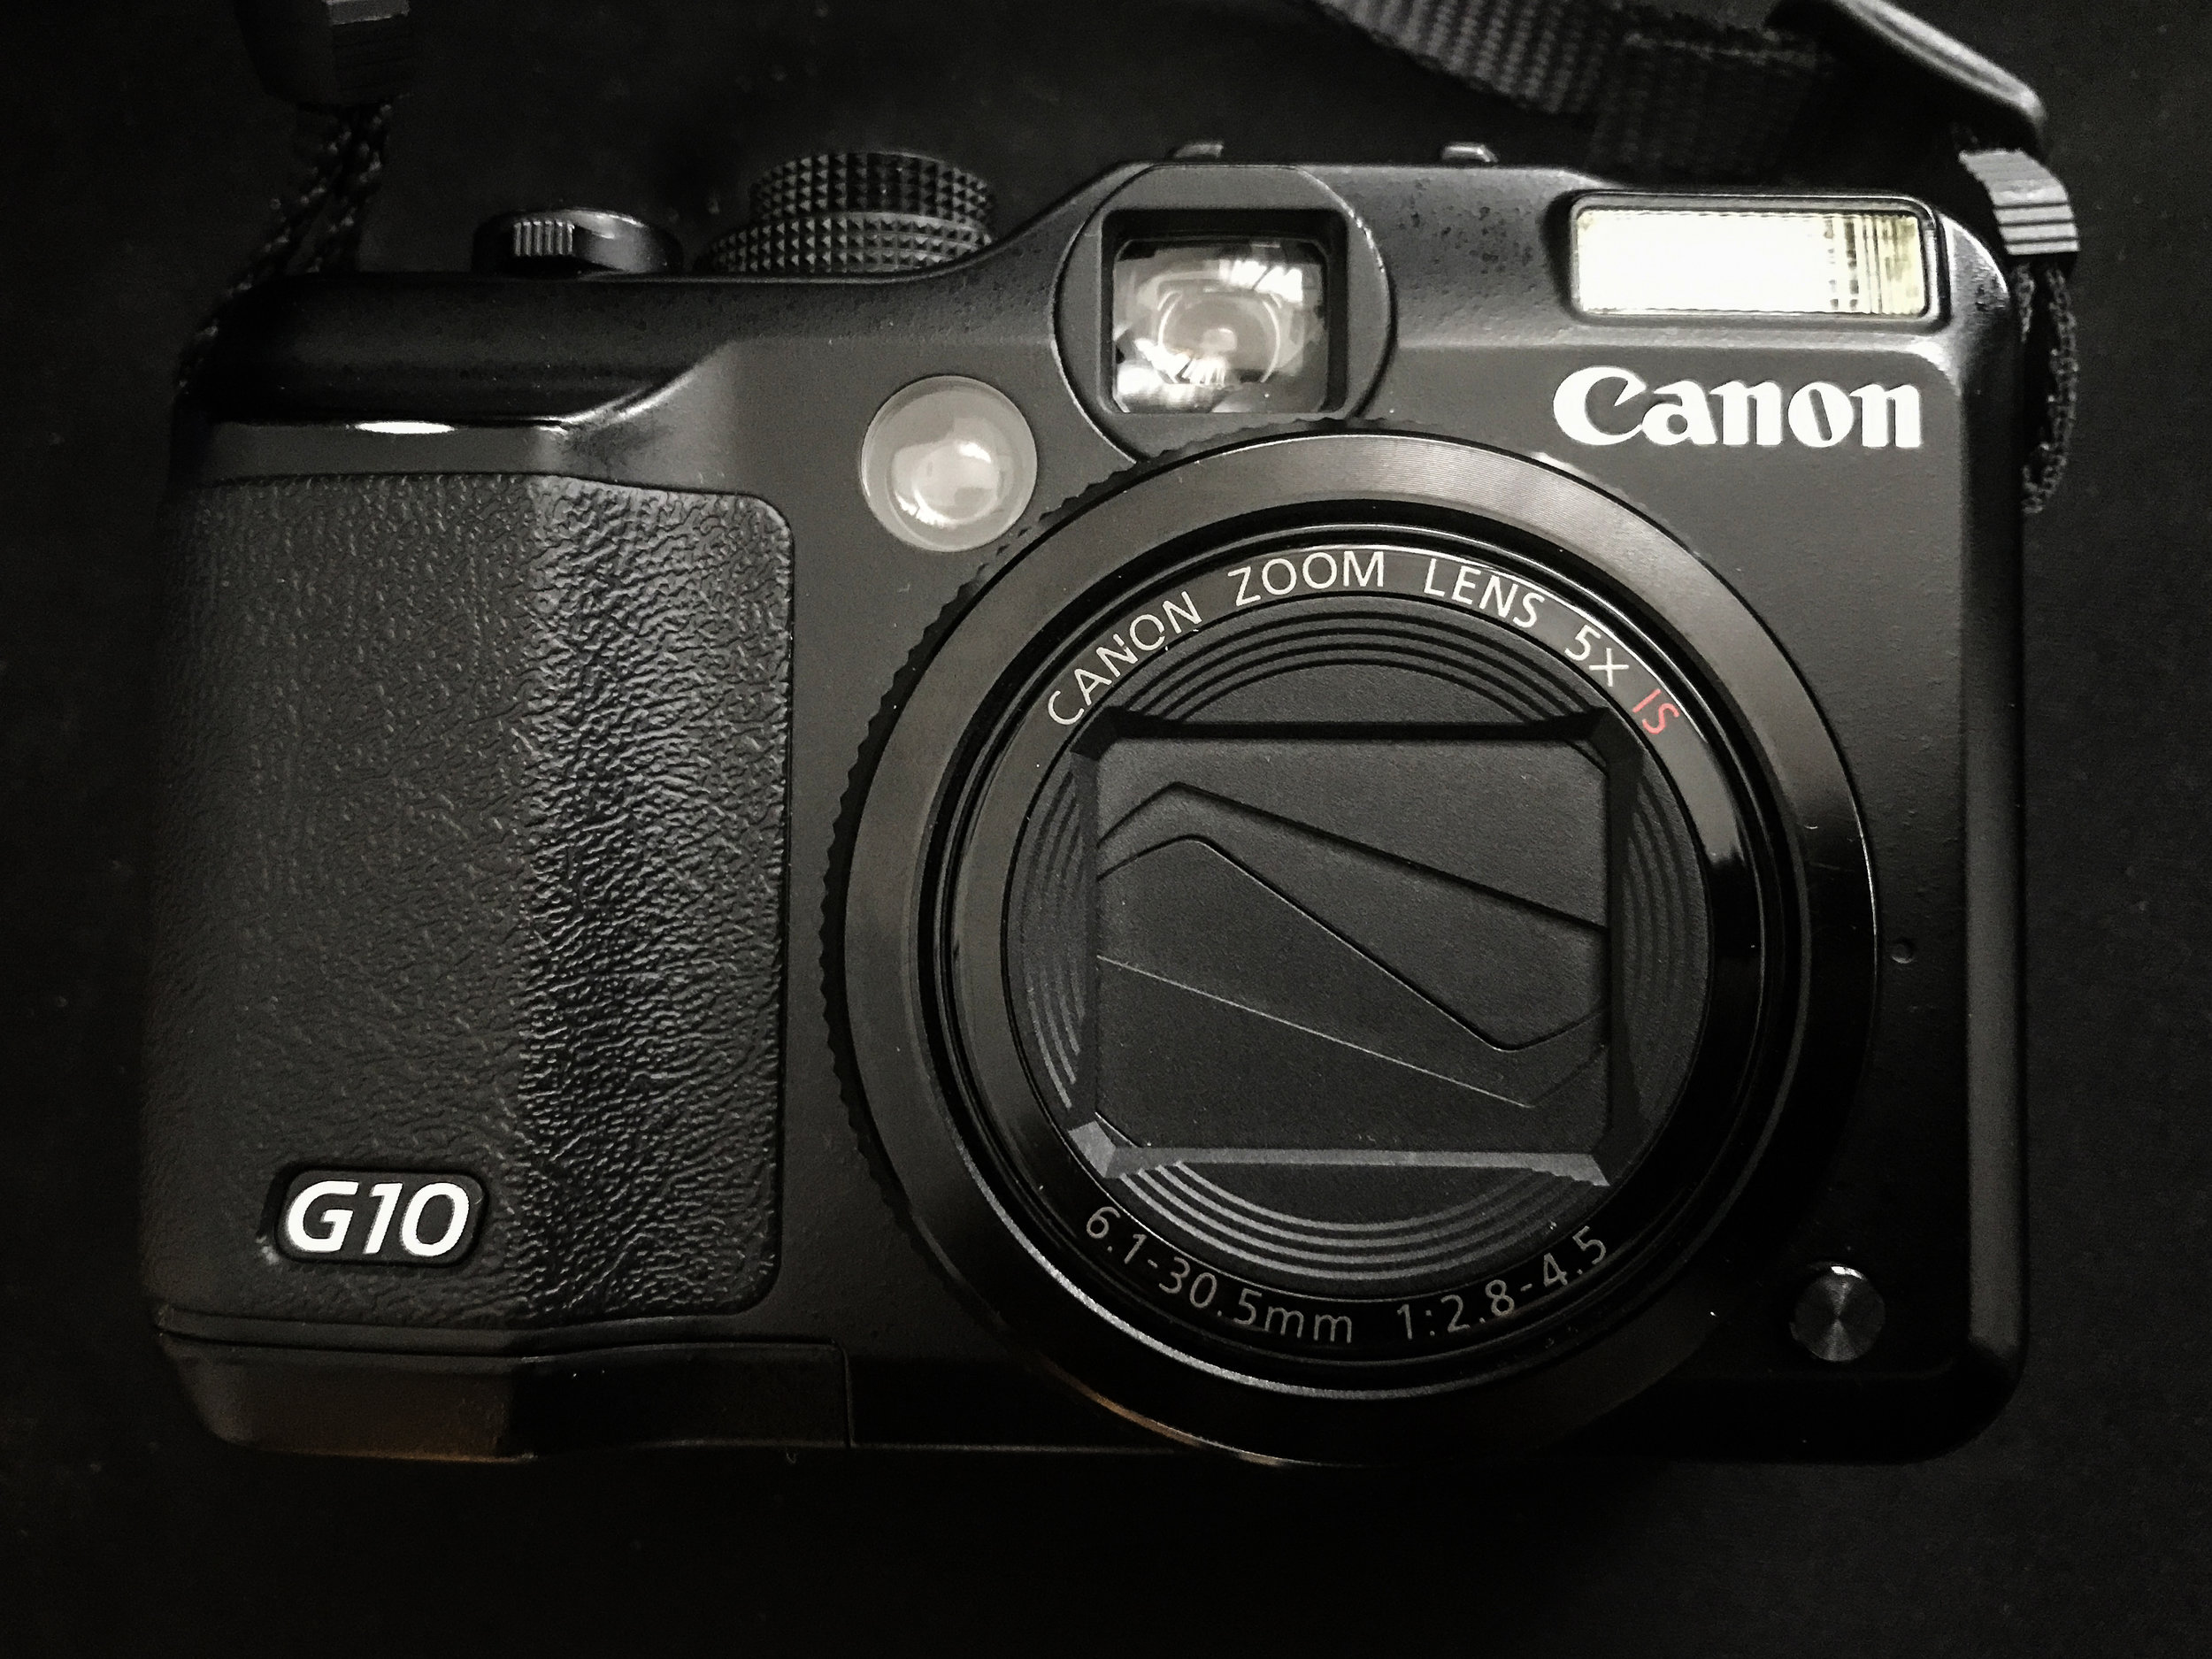 The Canon G10 with 720nm infrared conversion